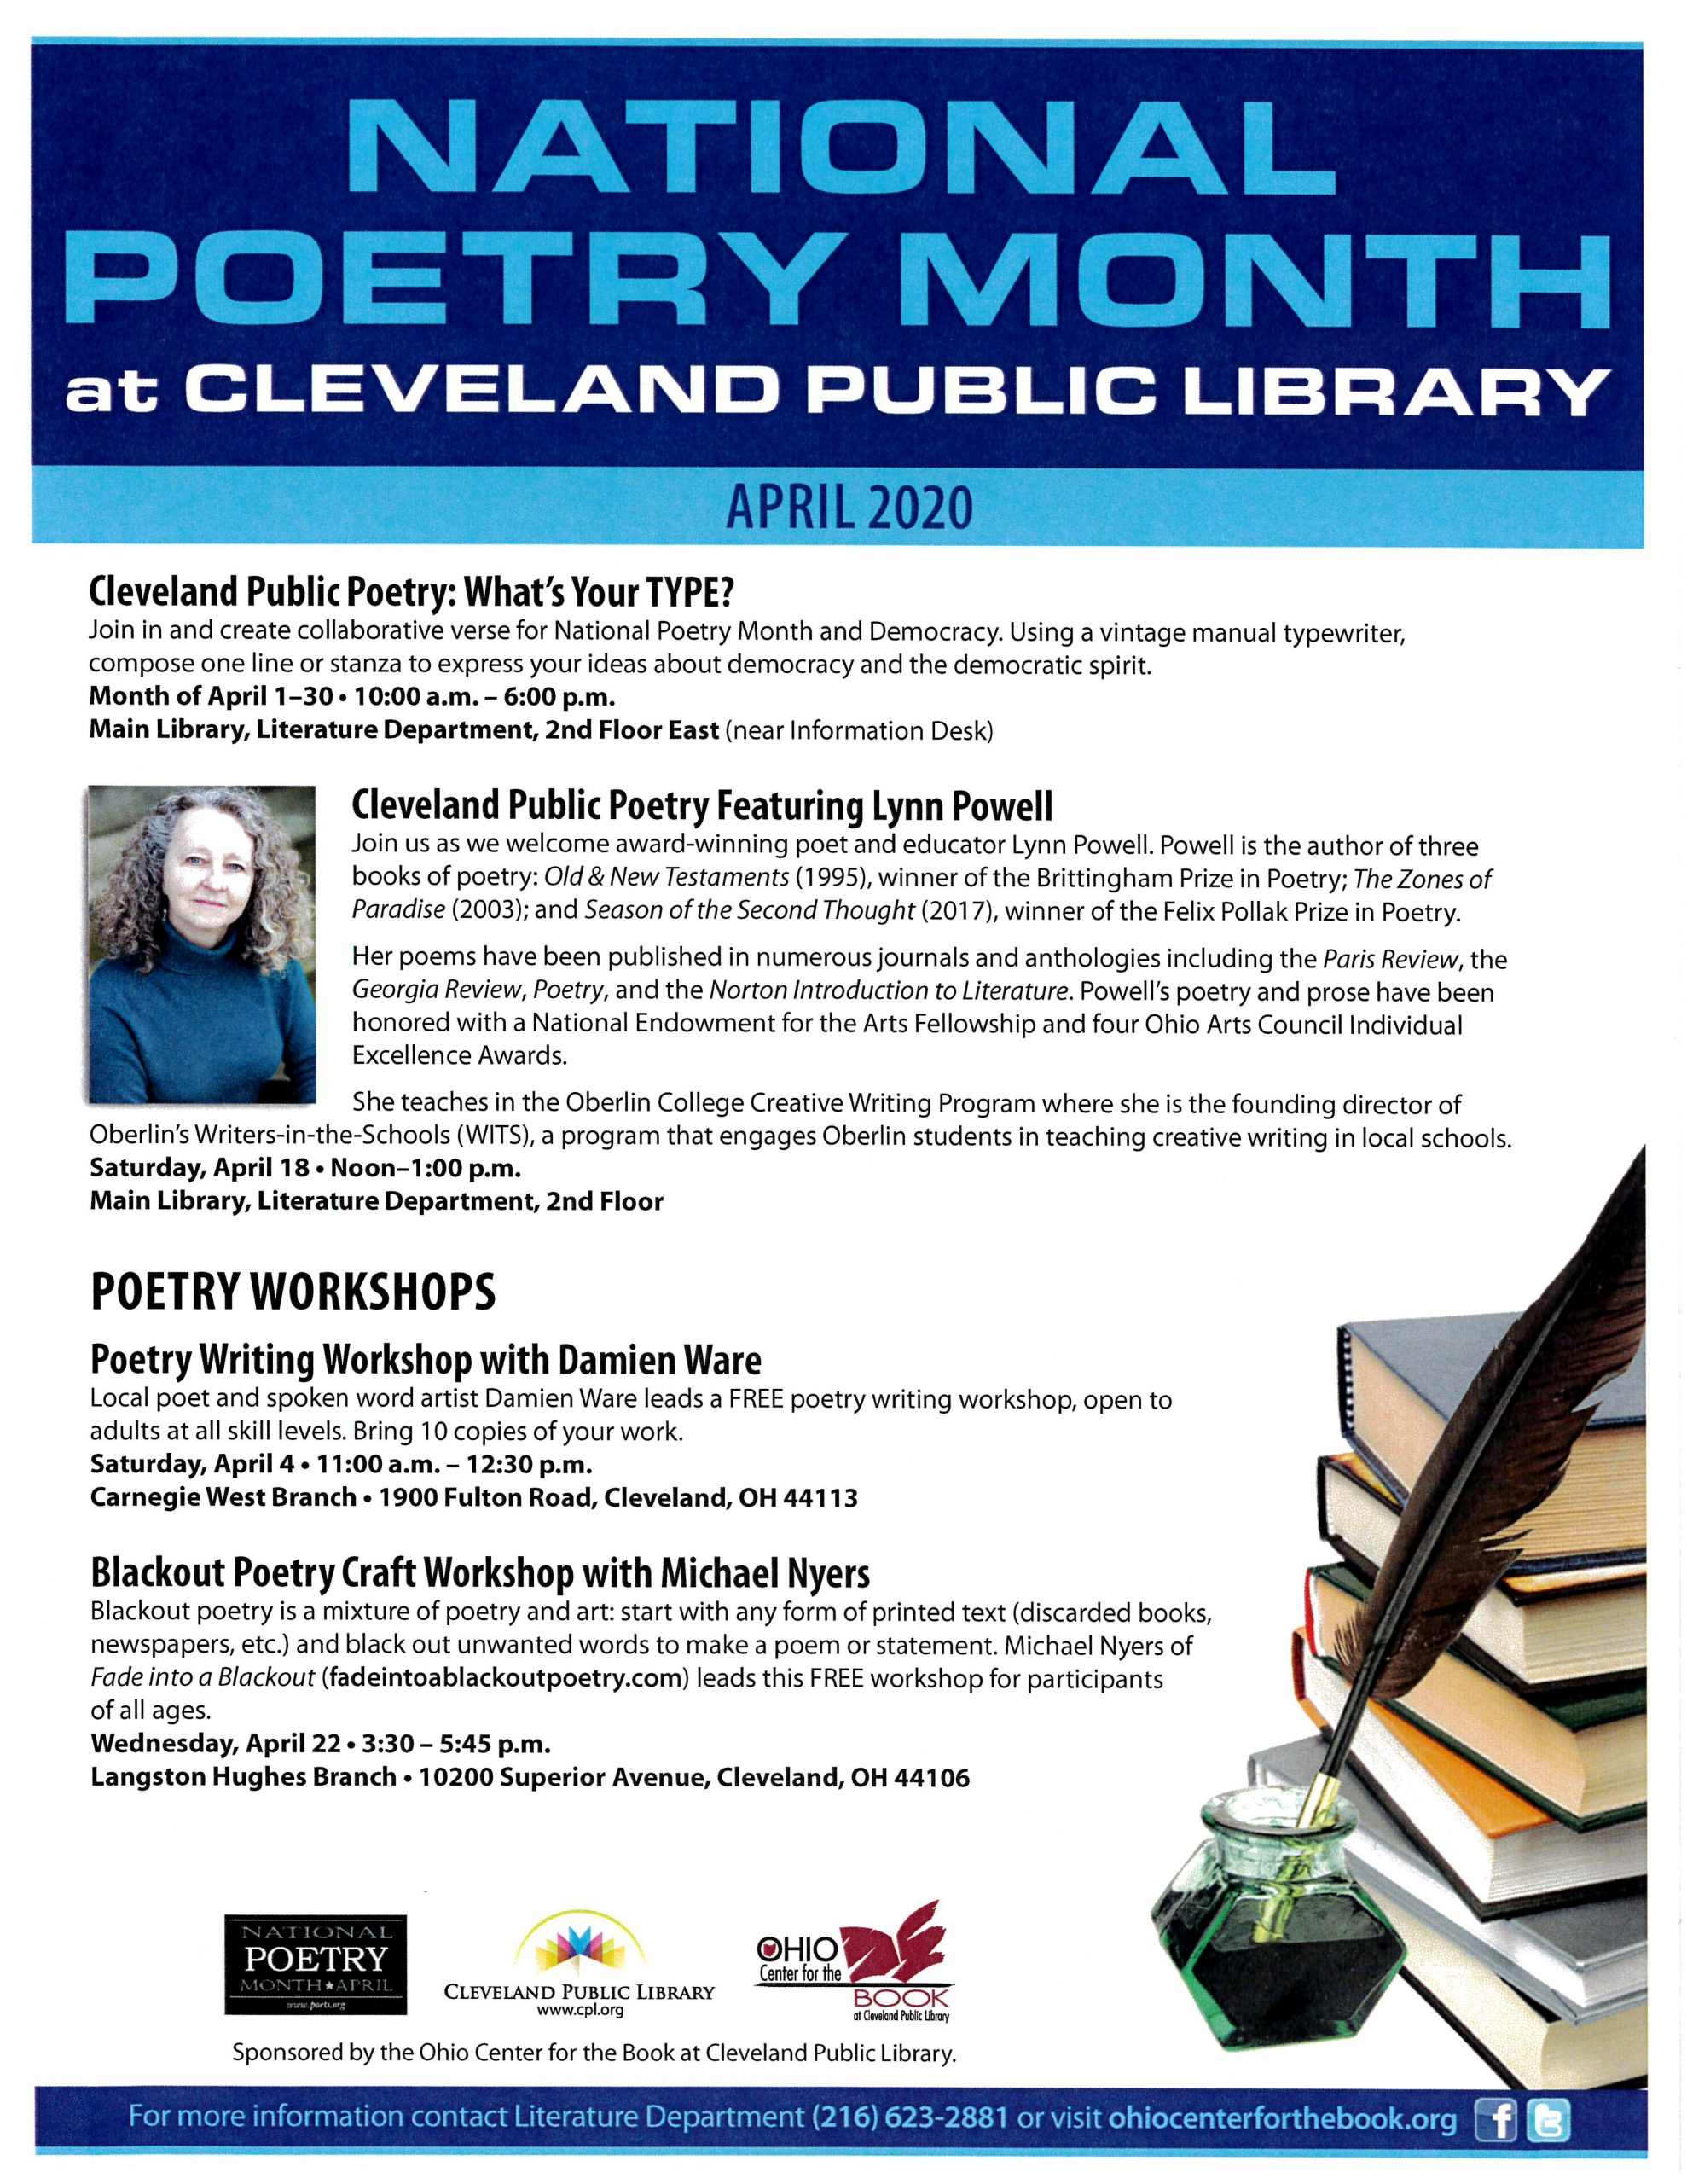 National Poetry Month 2020 at Cleveland Public Library - Blackout Poetry Workshop with Michael Nyers of Fade into a Blackout